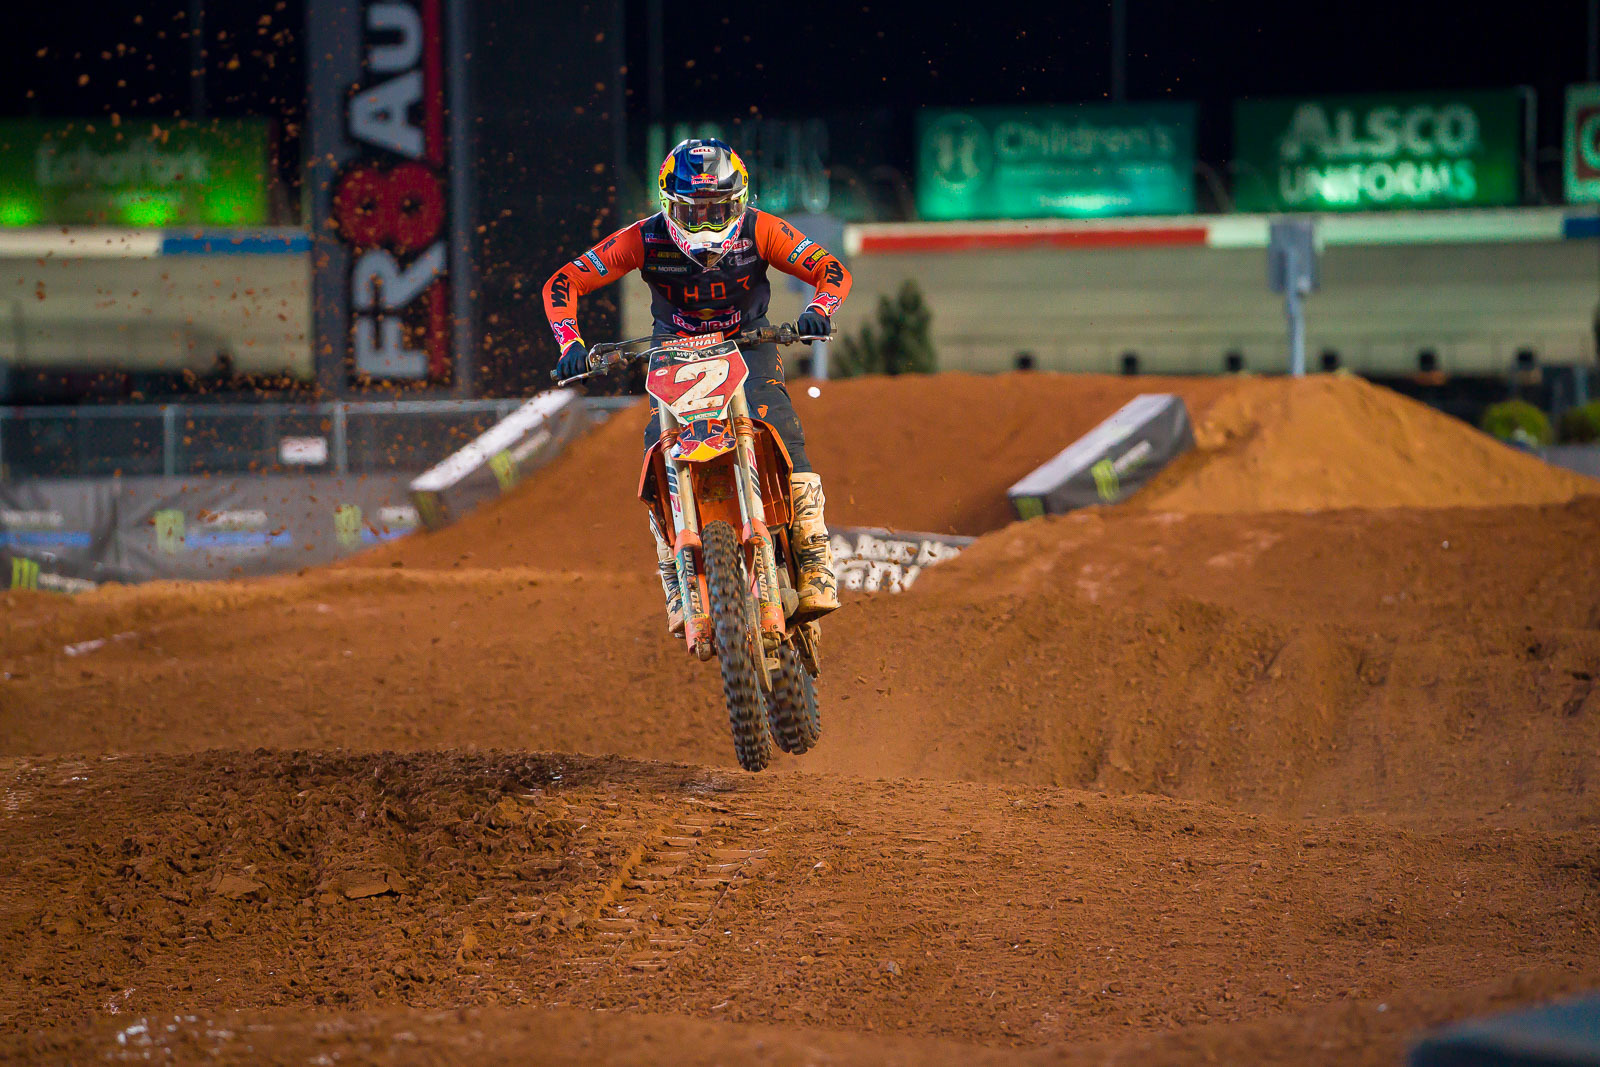 2021-ATLANTA-THREE-SUPERCROSS_KICKSTART_1003